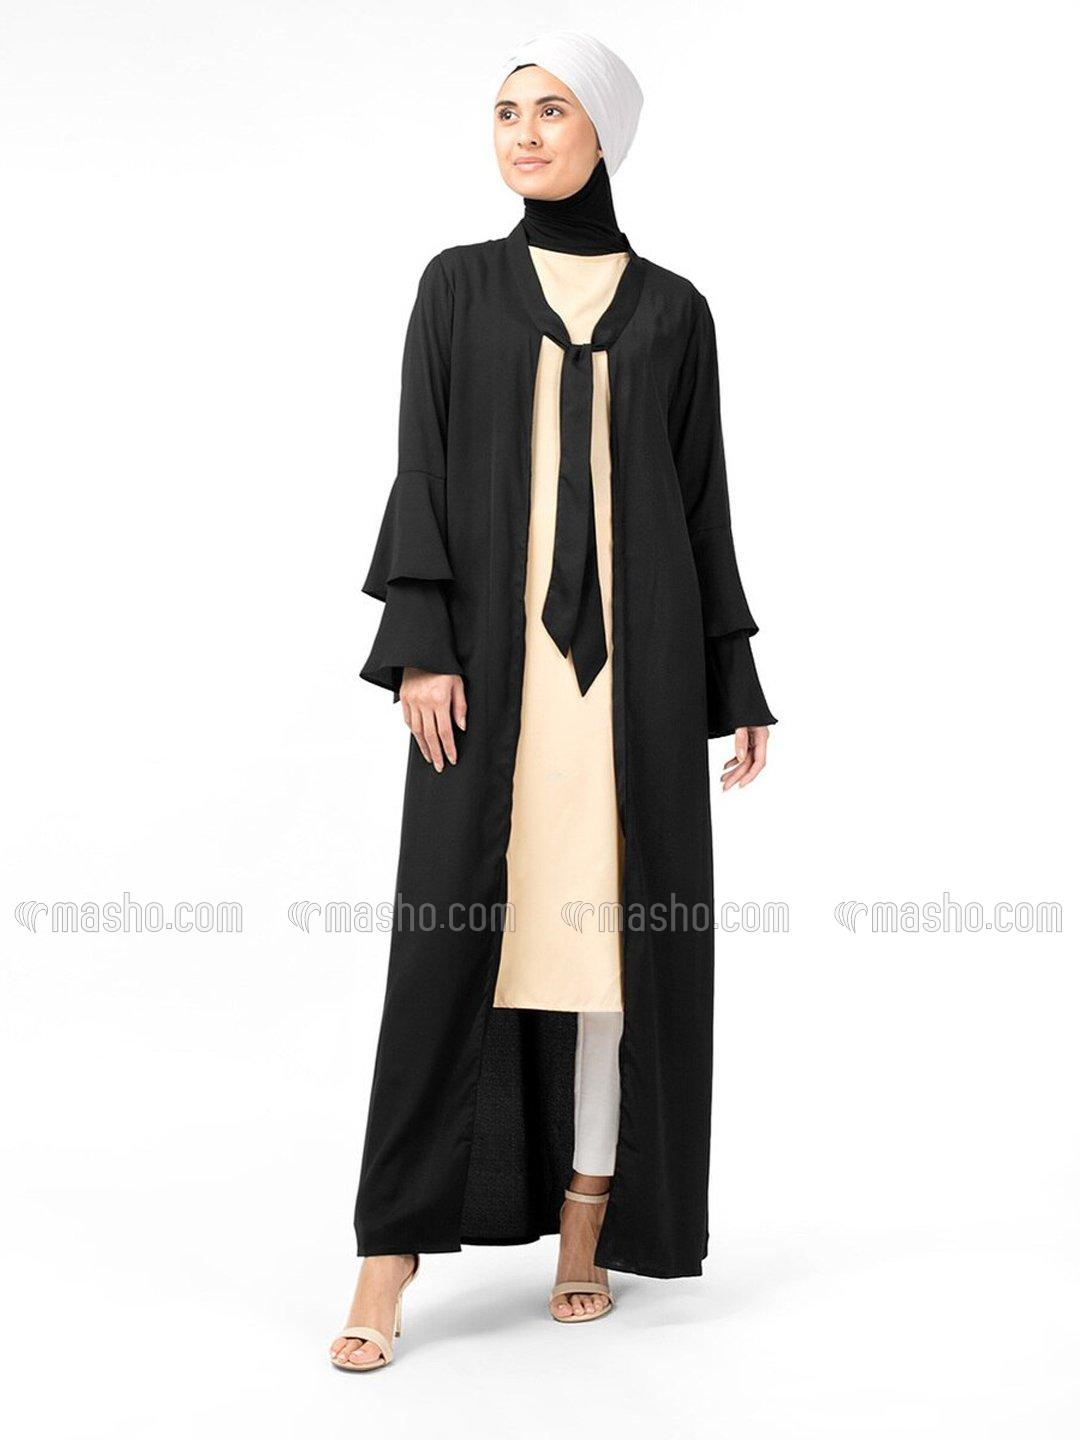 100% Polyester Layered Bell Sleeve Kimono In Black